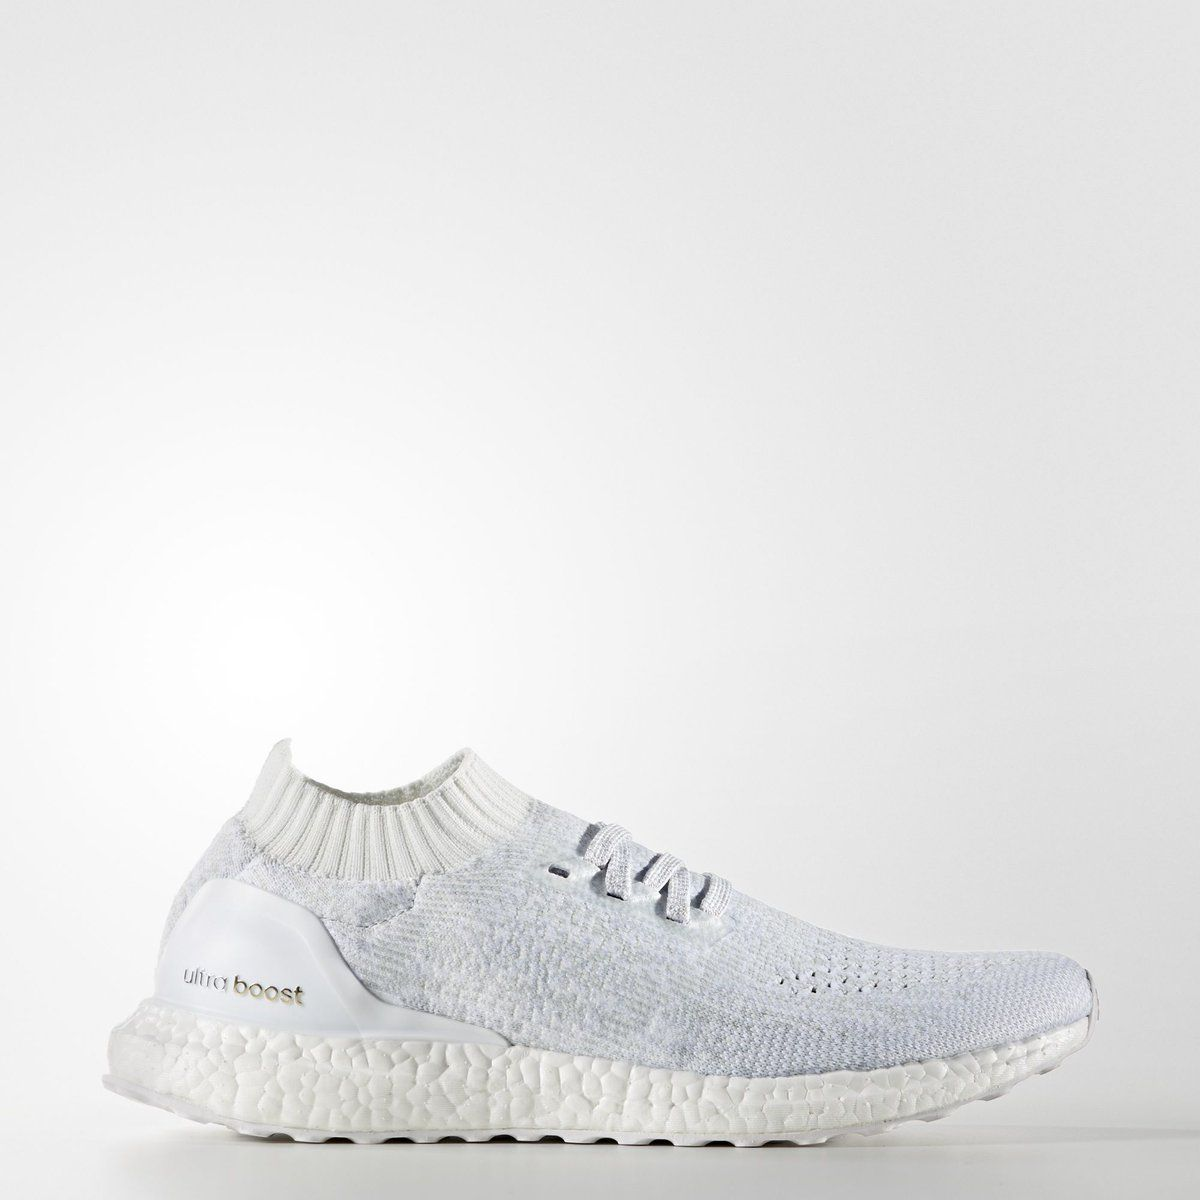 """Adidas Ultra Boost Uncaged """"Triple White"""". Dropping this July 16th. Secure your pair => http://bit.ly/1oeKFMb"""